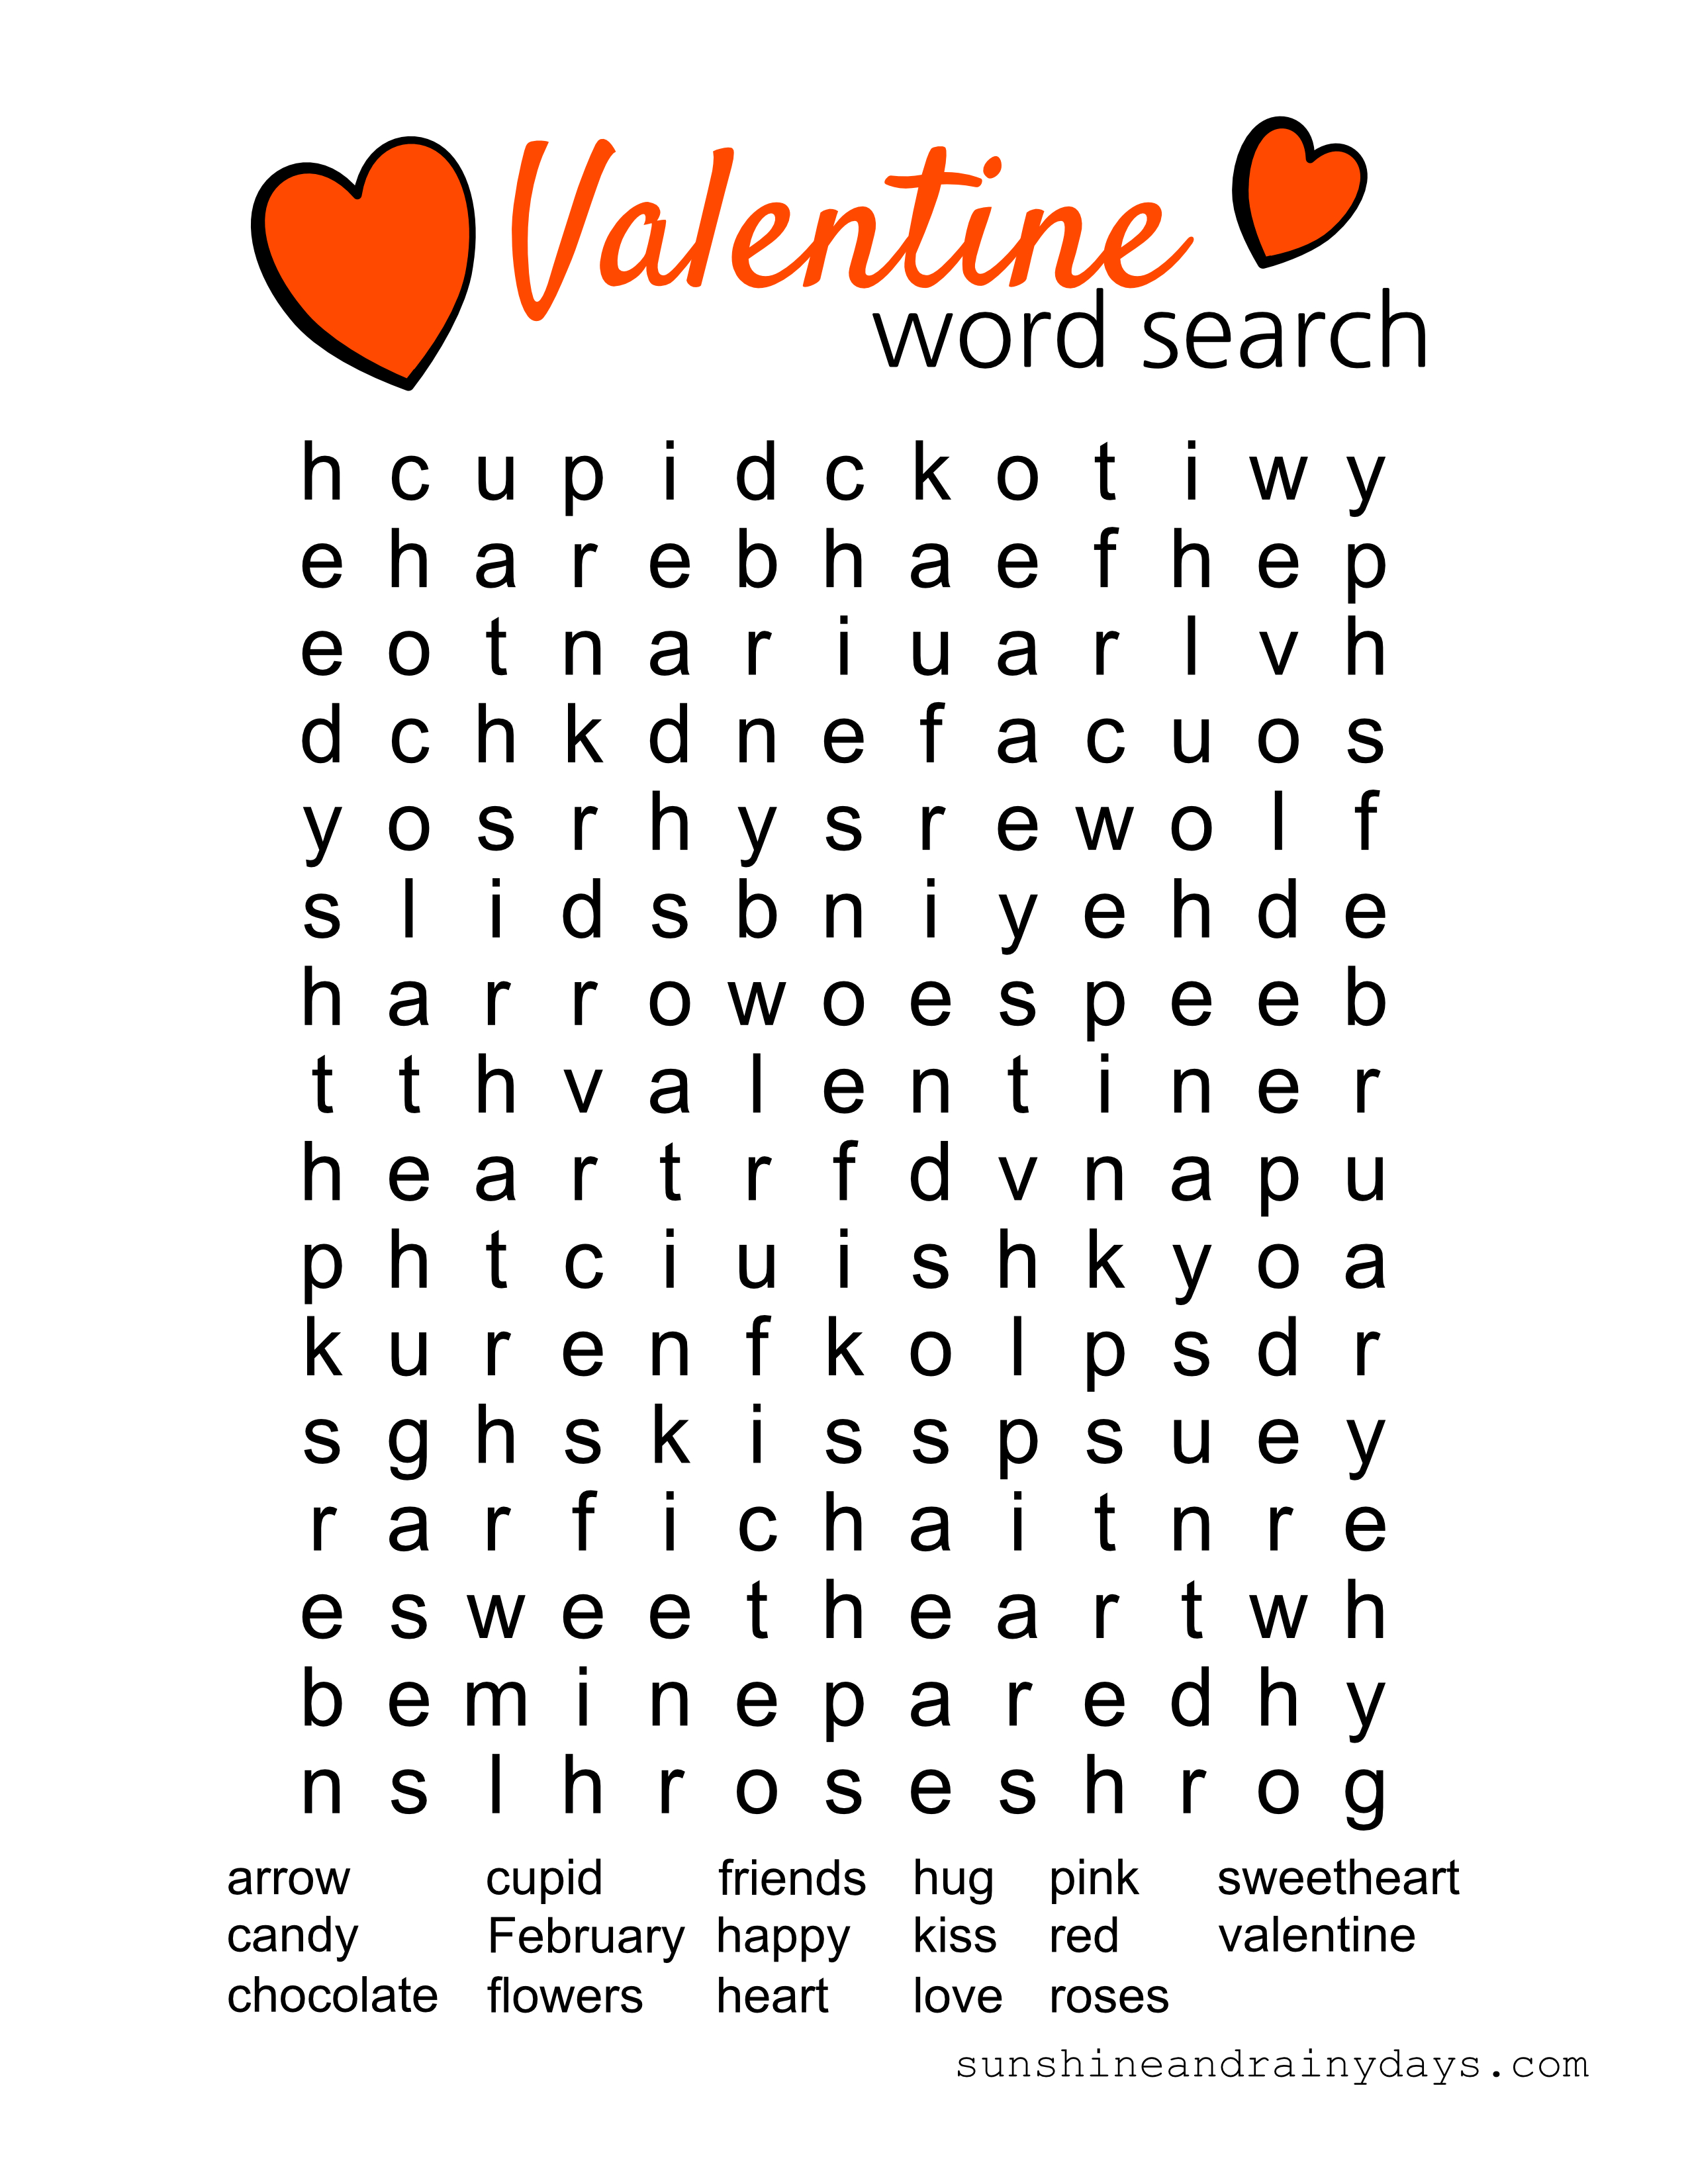 Valentine Word Search Printable - Sunshine And Rainy Days - Free Printable Valentines Crossword